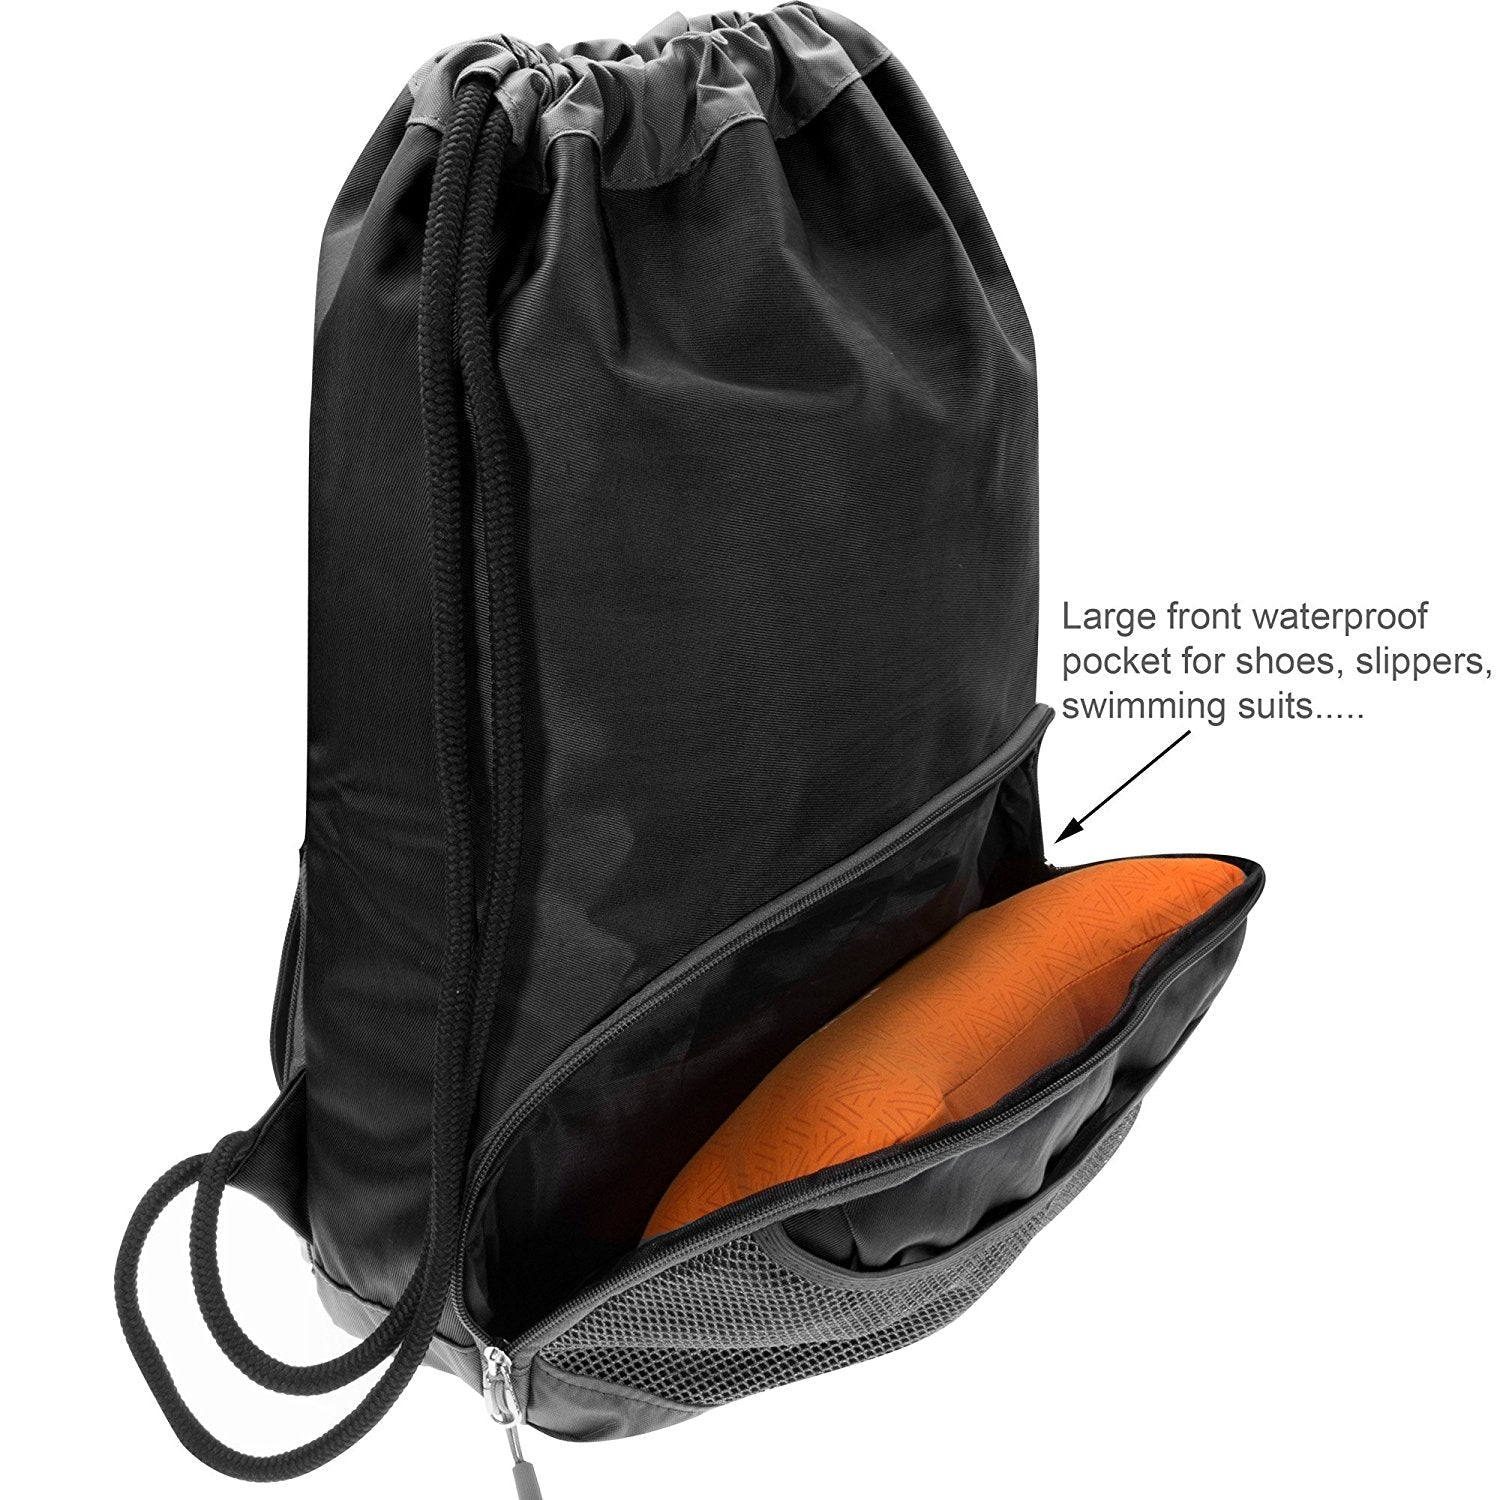 ButterFox Waterproof Fabric Swim PE Gym Sports Bag Drawstring Sackpack  Backpack for Kids 33559d7b0fdda